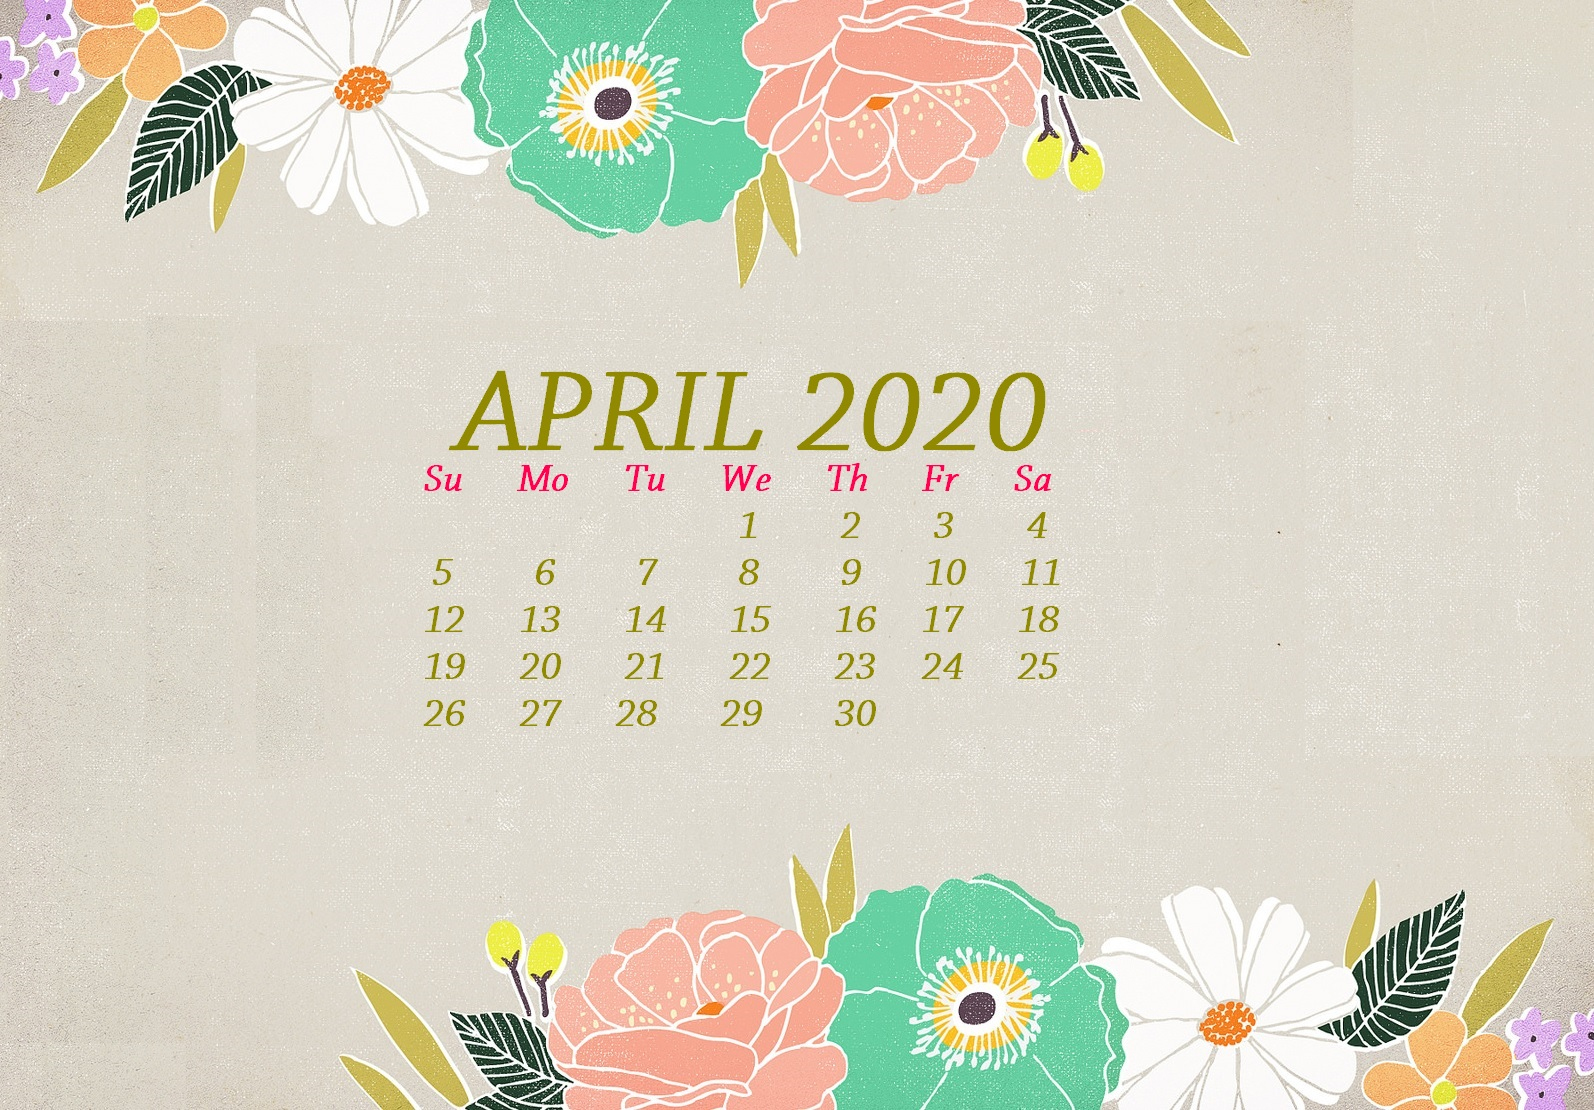 Floral Calendar Wallpaper April 2020